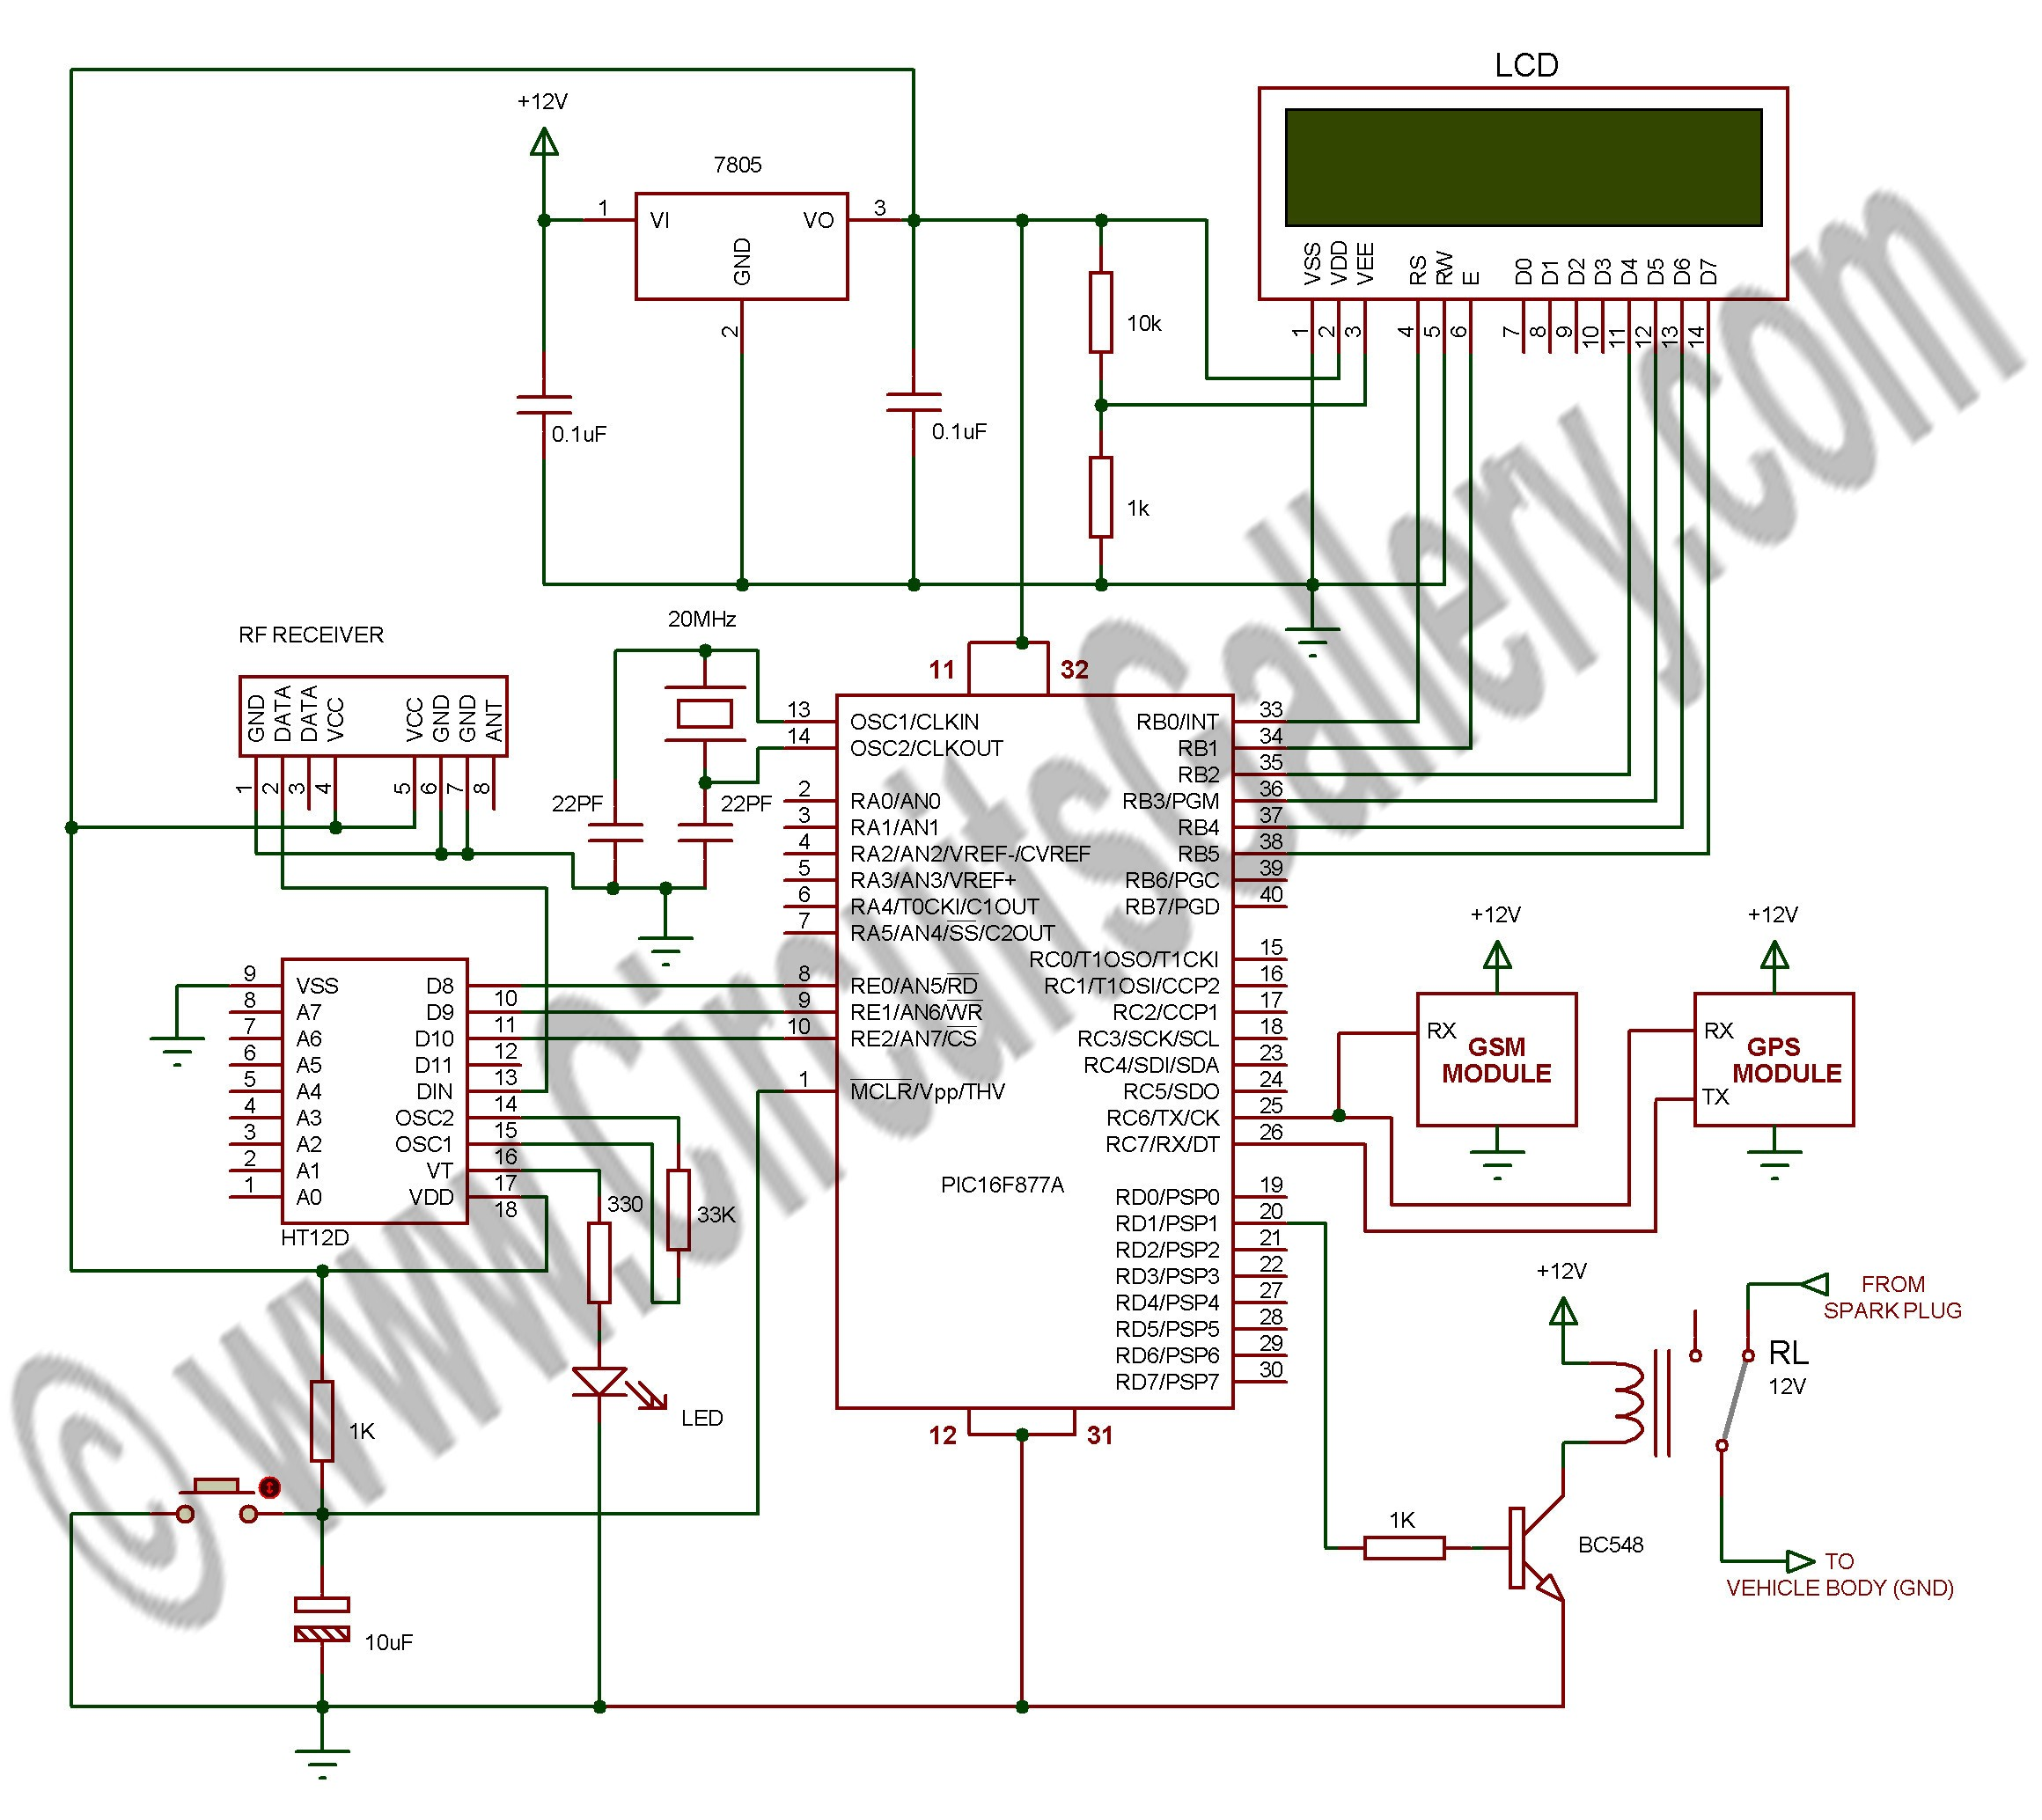 Hid Ballast Wiring Diagrams Free Download Diagram Schematic H4 Relay Duratec Library